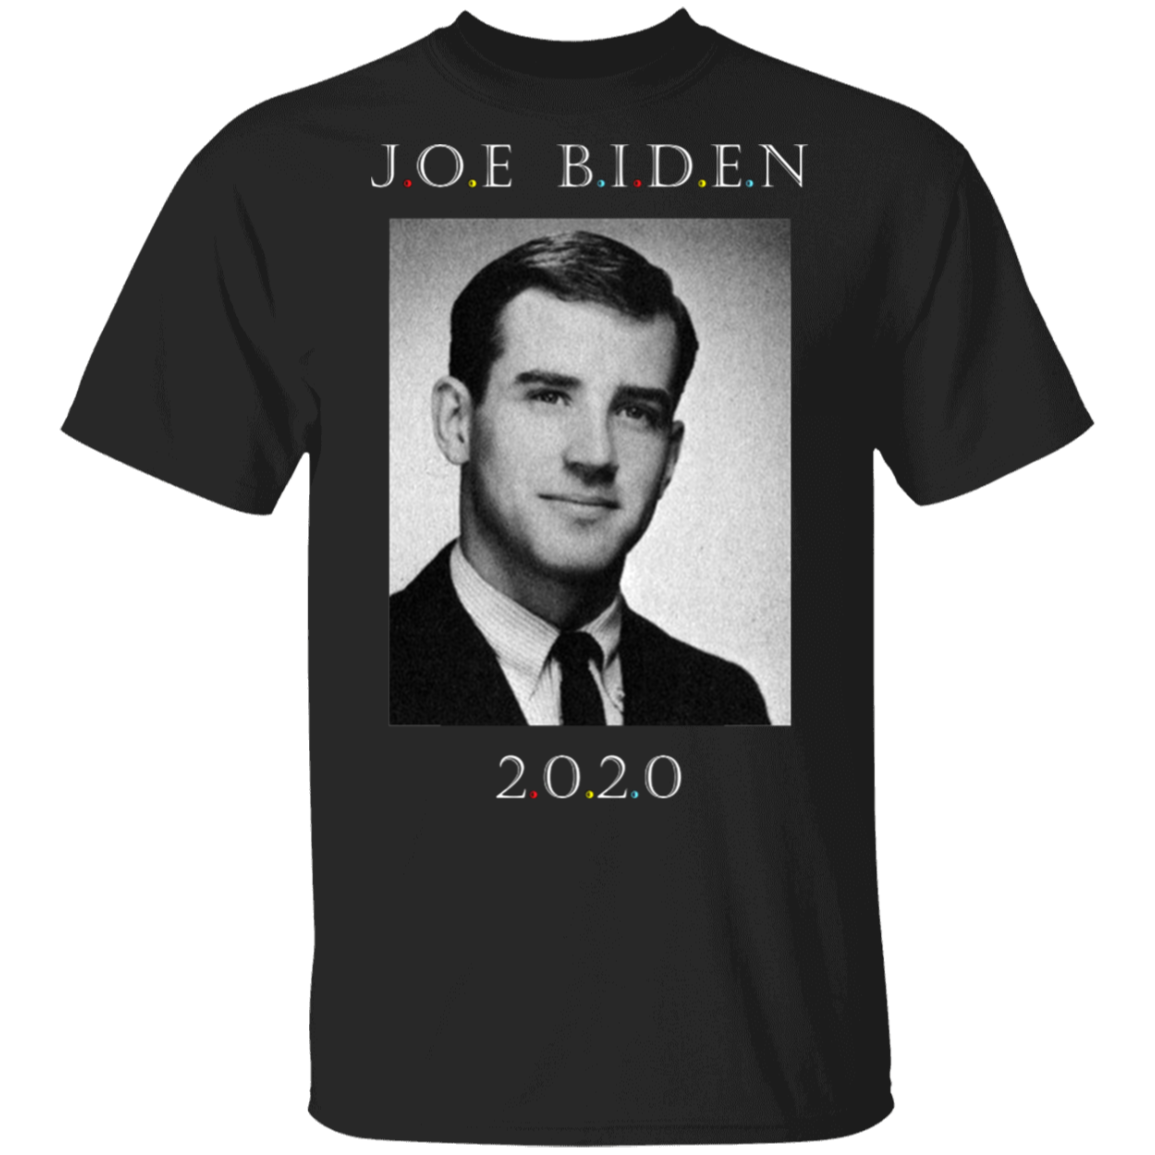 Young Joe Biden Shirt Vote For Biden President 2020 T-Shirt